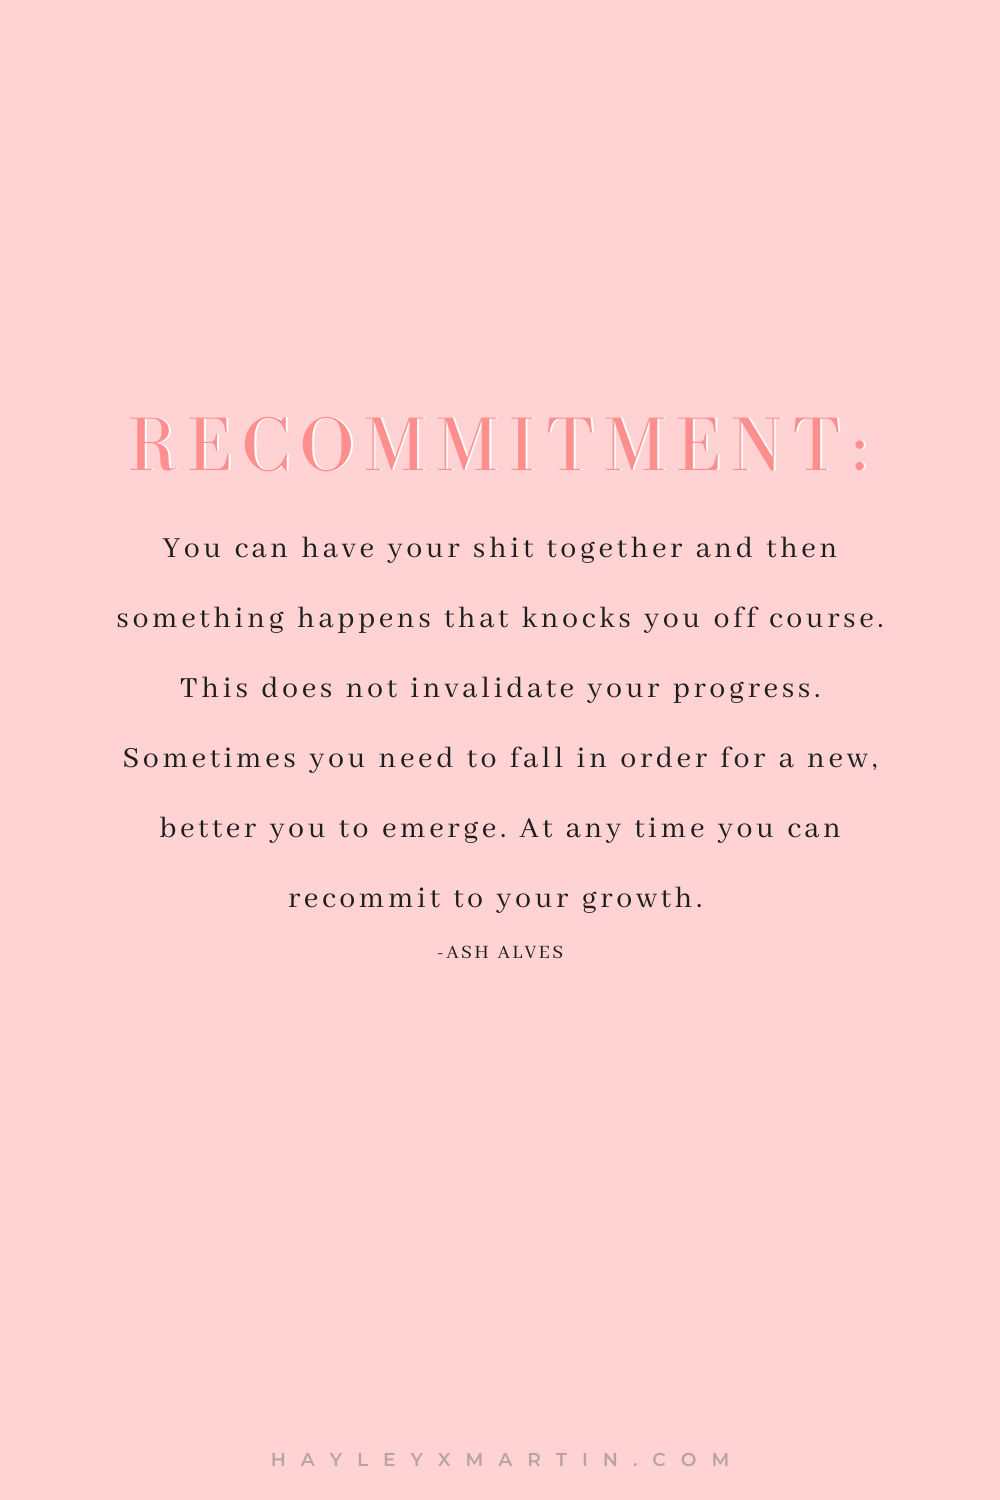 Recommitment: sometimes you need to fall in order for a new, better you to emerge. hayleyxmartin